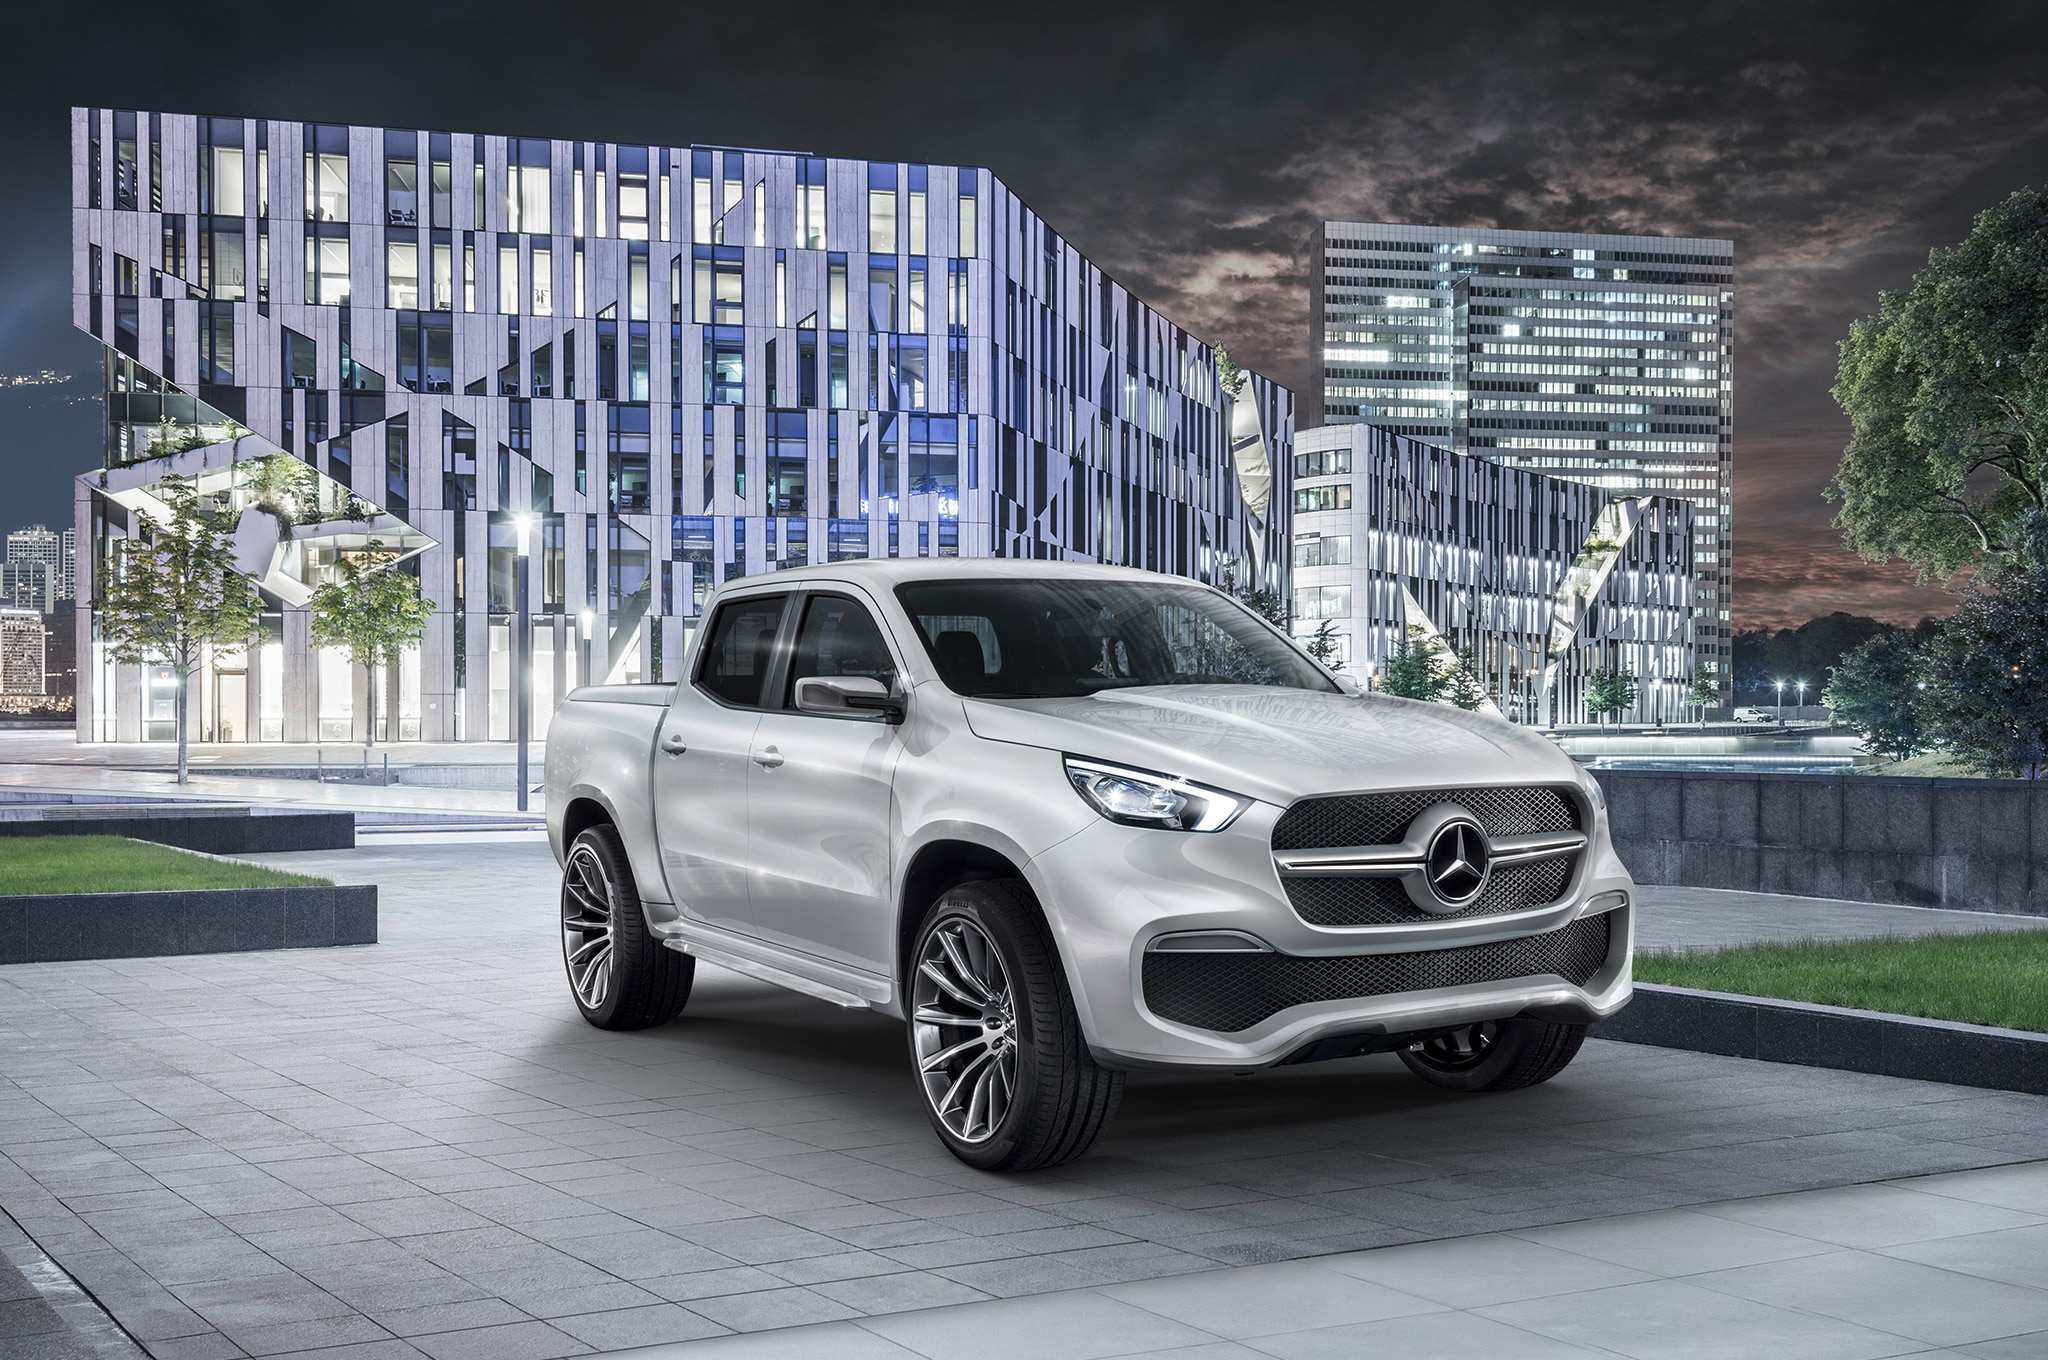 53 Concept of 2020 Mercedes Benz X Class Spy Shoot with 2020 Mercedes Benz X Class